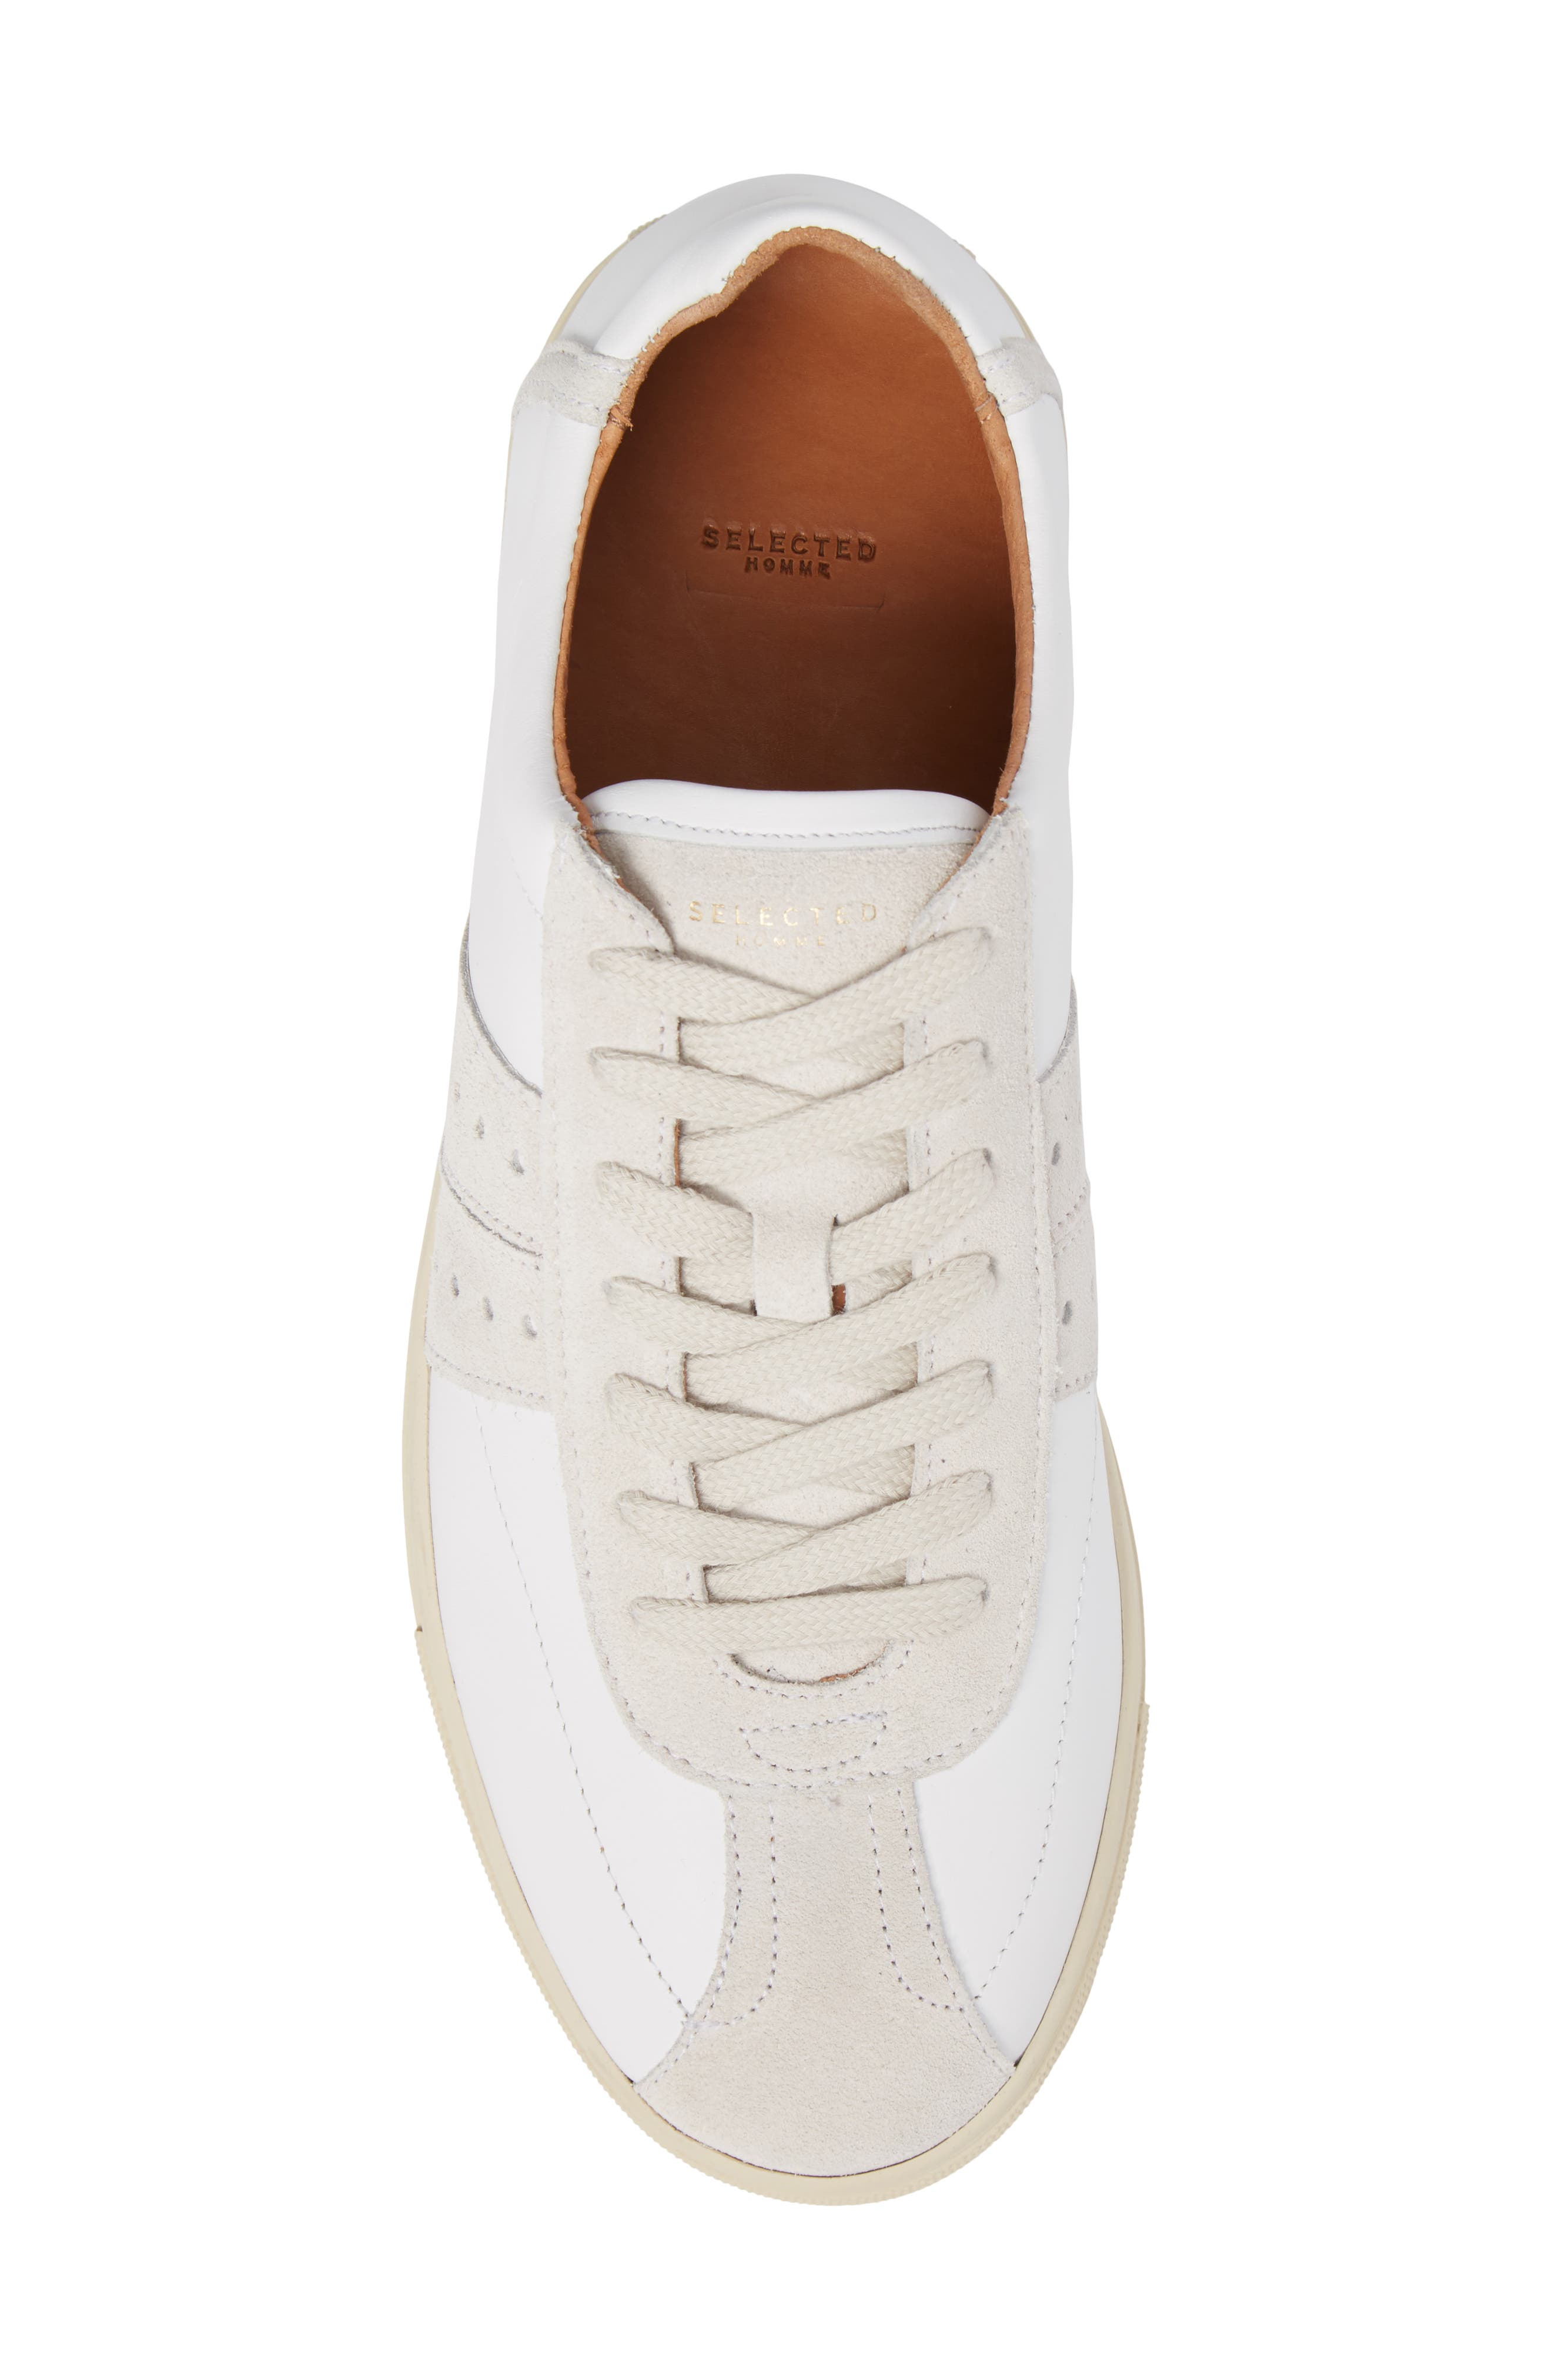 Duran New Mix Sneaker,                             Alternate thumbnail 5, color,                             White Leather/ Suede